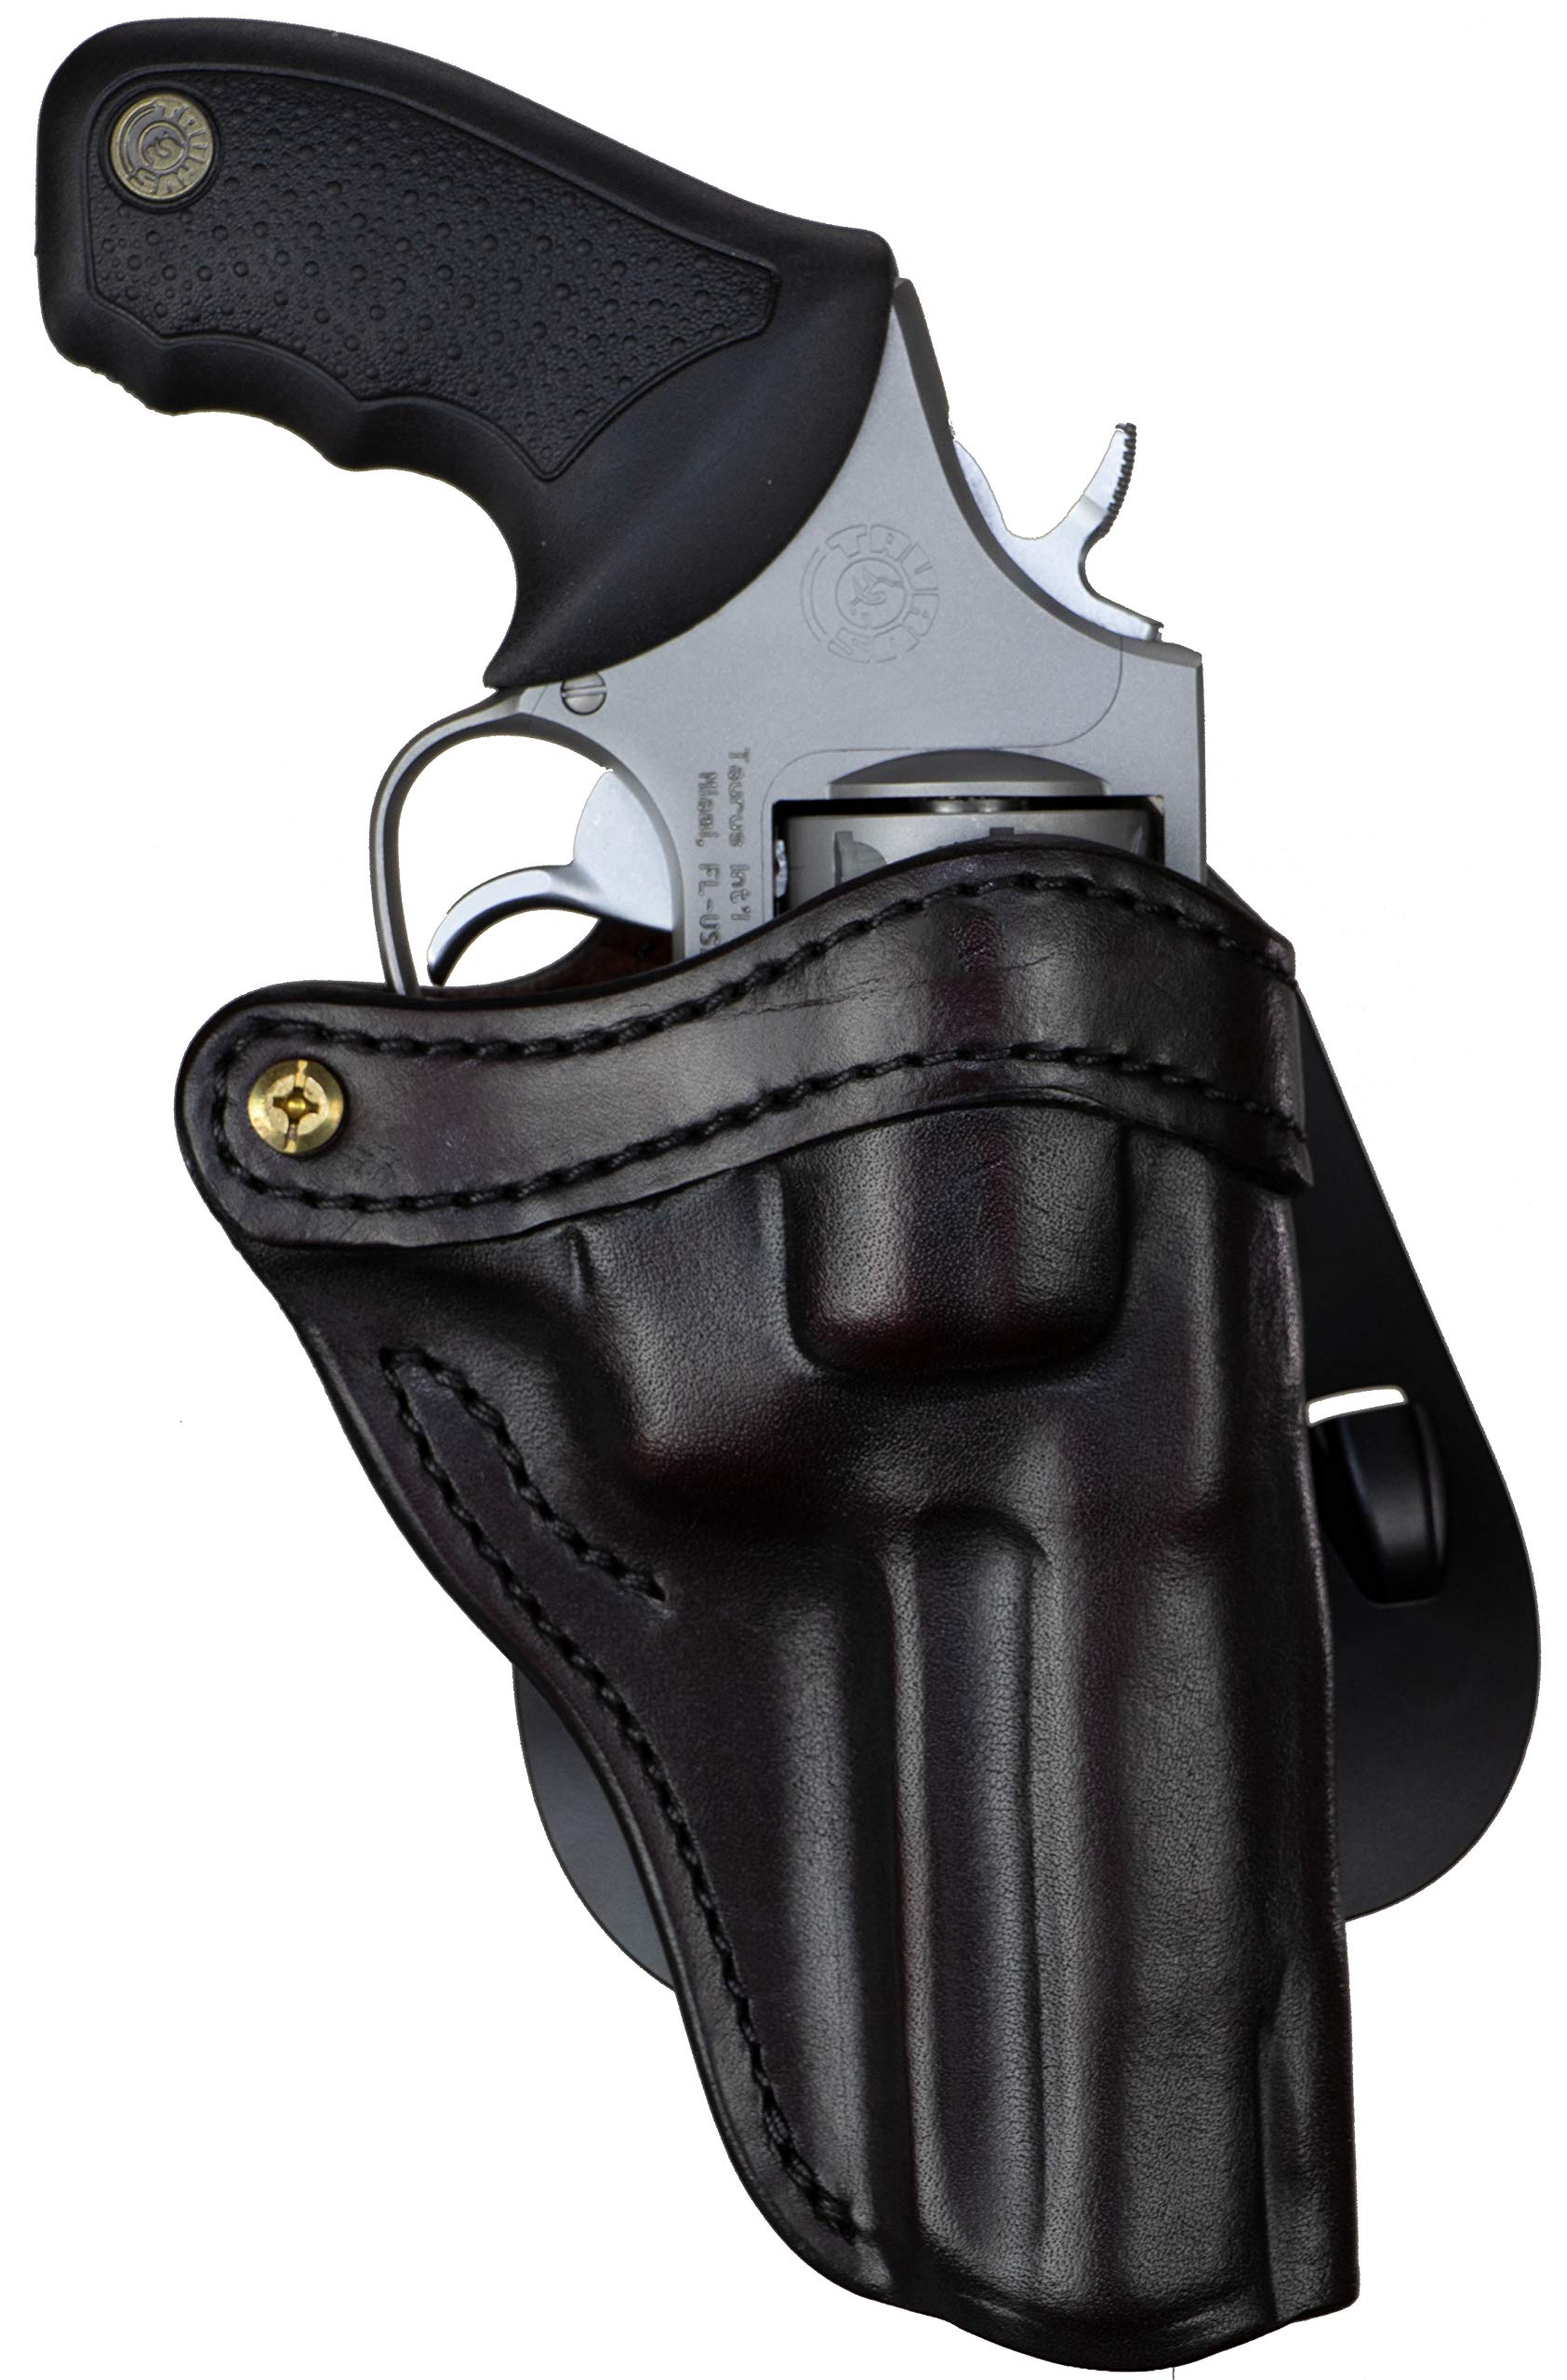 1791 GUNLEATHER K-Frame Revolver Paddle Holster - OWB CCW Holster - Right Handed Leather Gun Holster for Belts - Ruger GP100, Smith & Wesson K Frame and 686